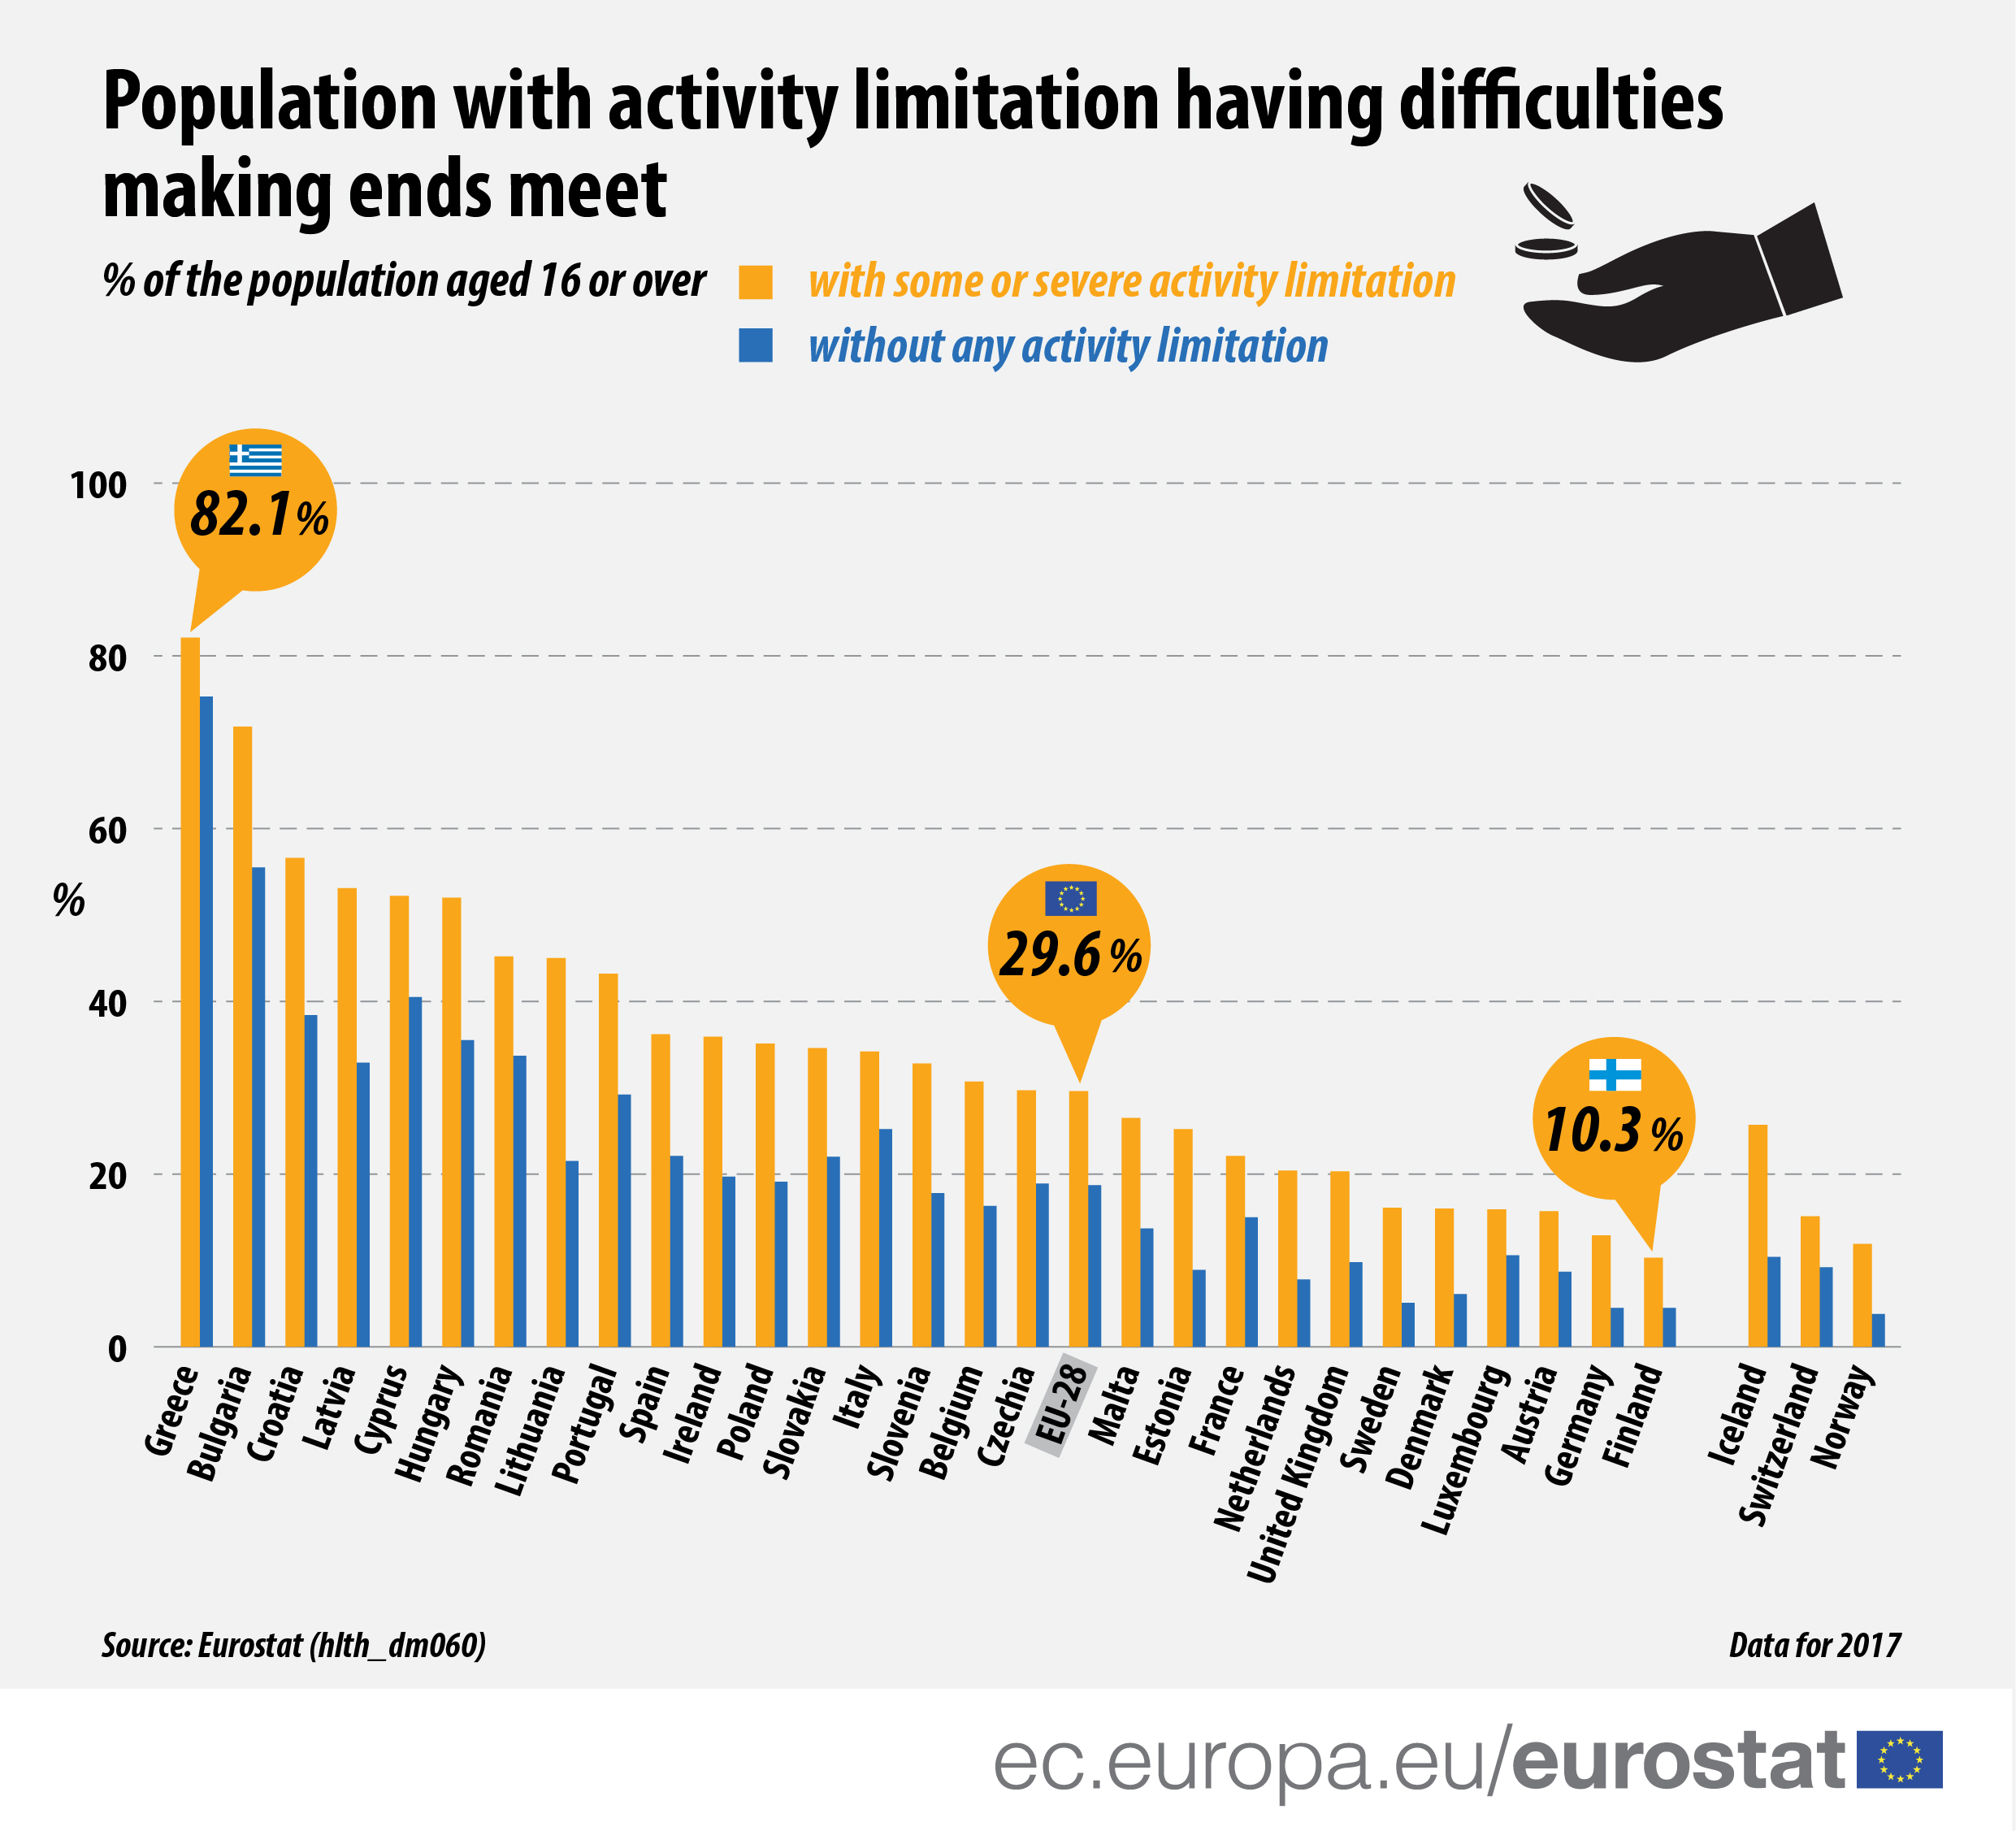 Graph: Population with activity limitation having difficulties making end meet